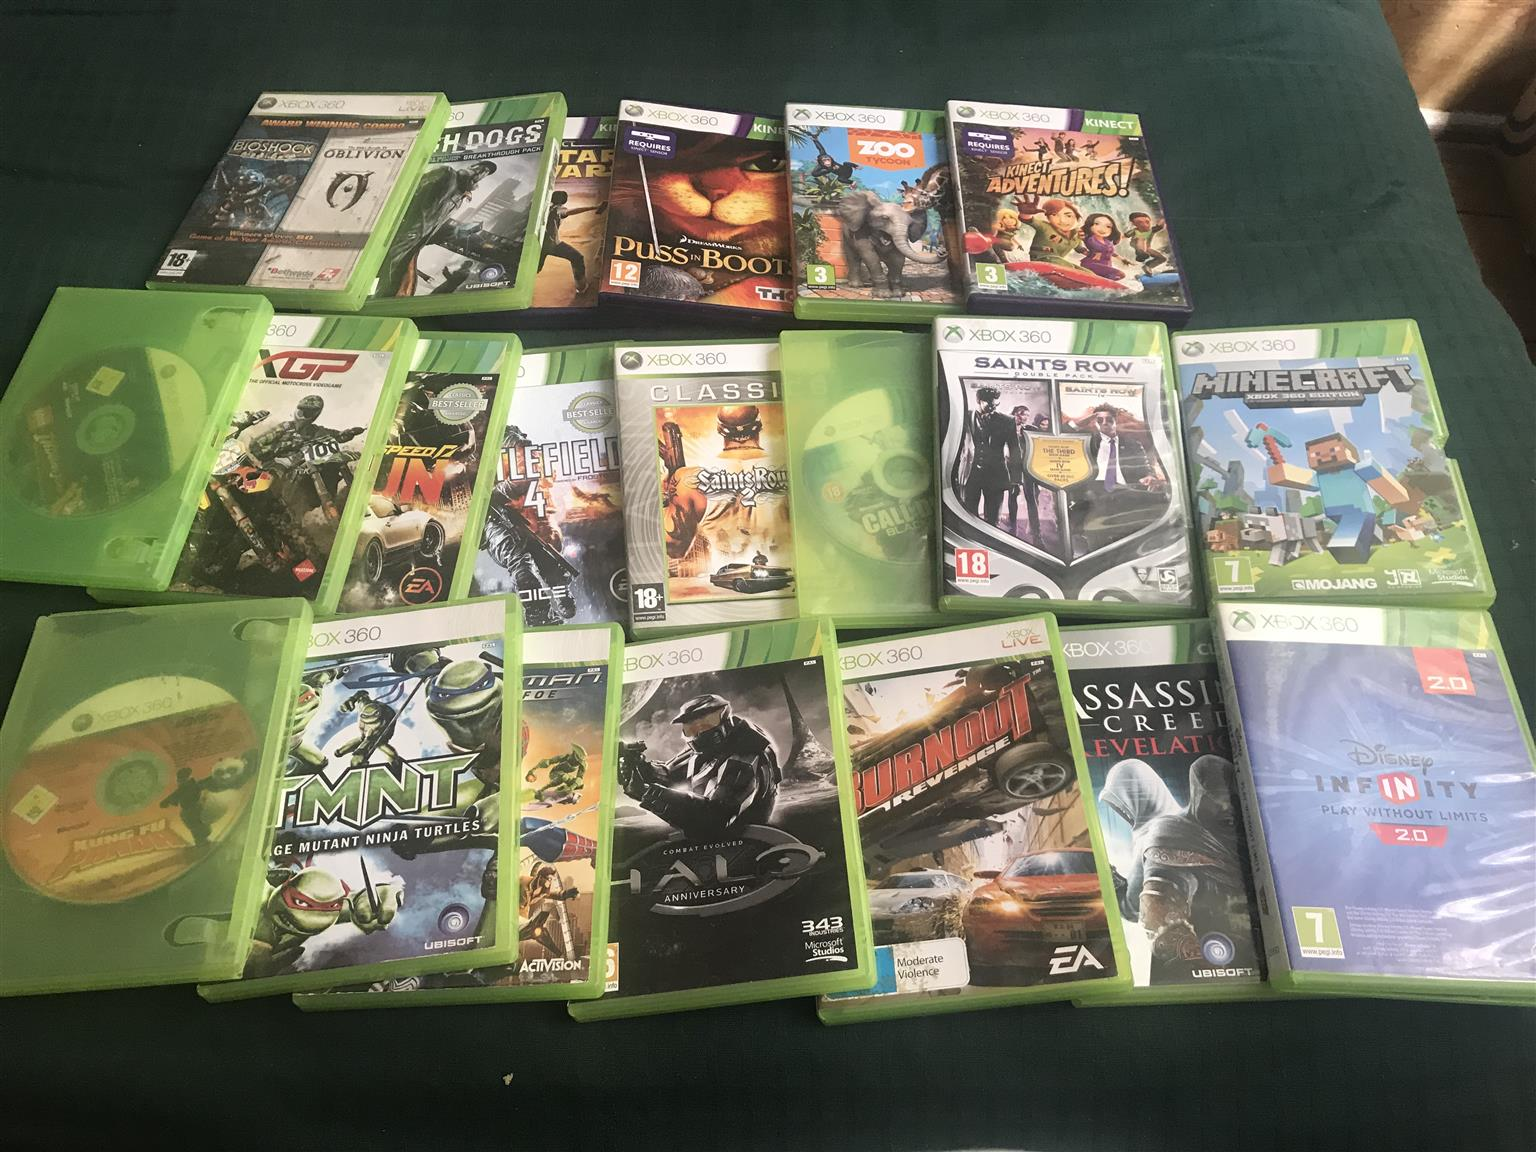 Xbox w/ 2 controllers, Kinect With 20 games